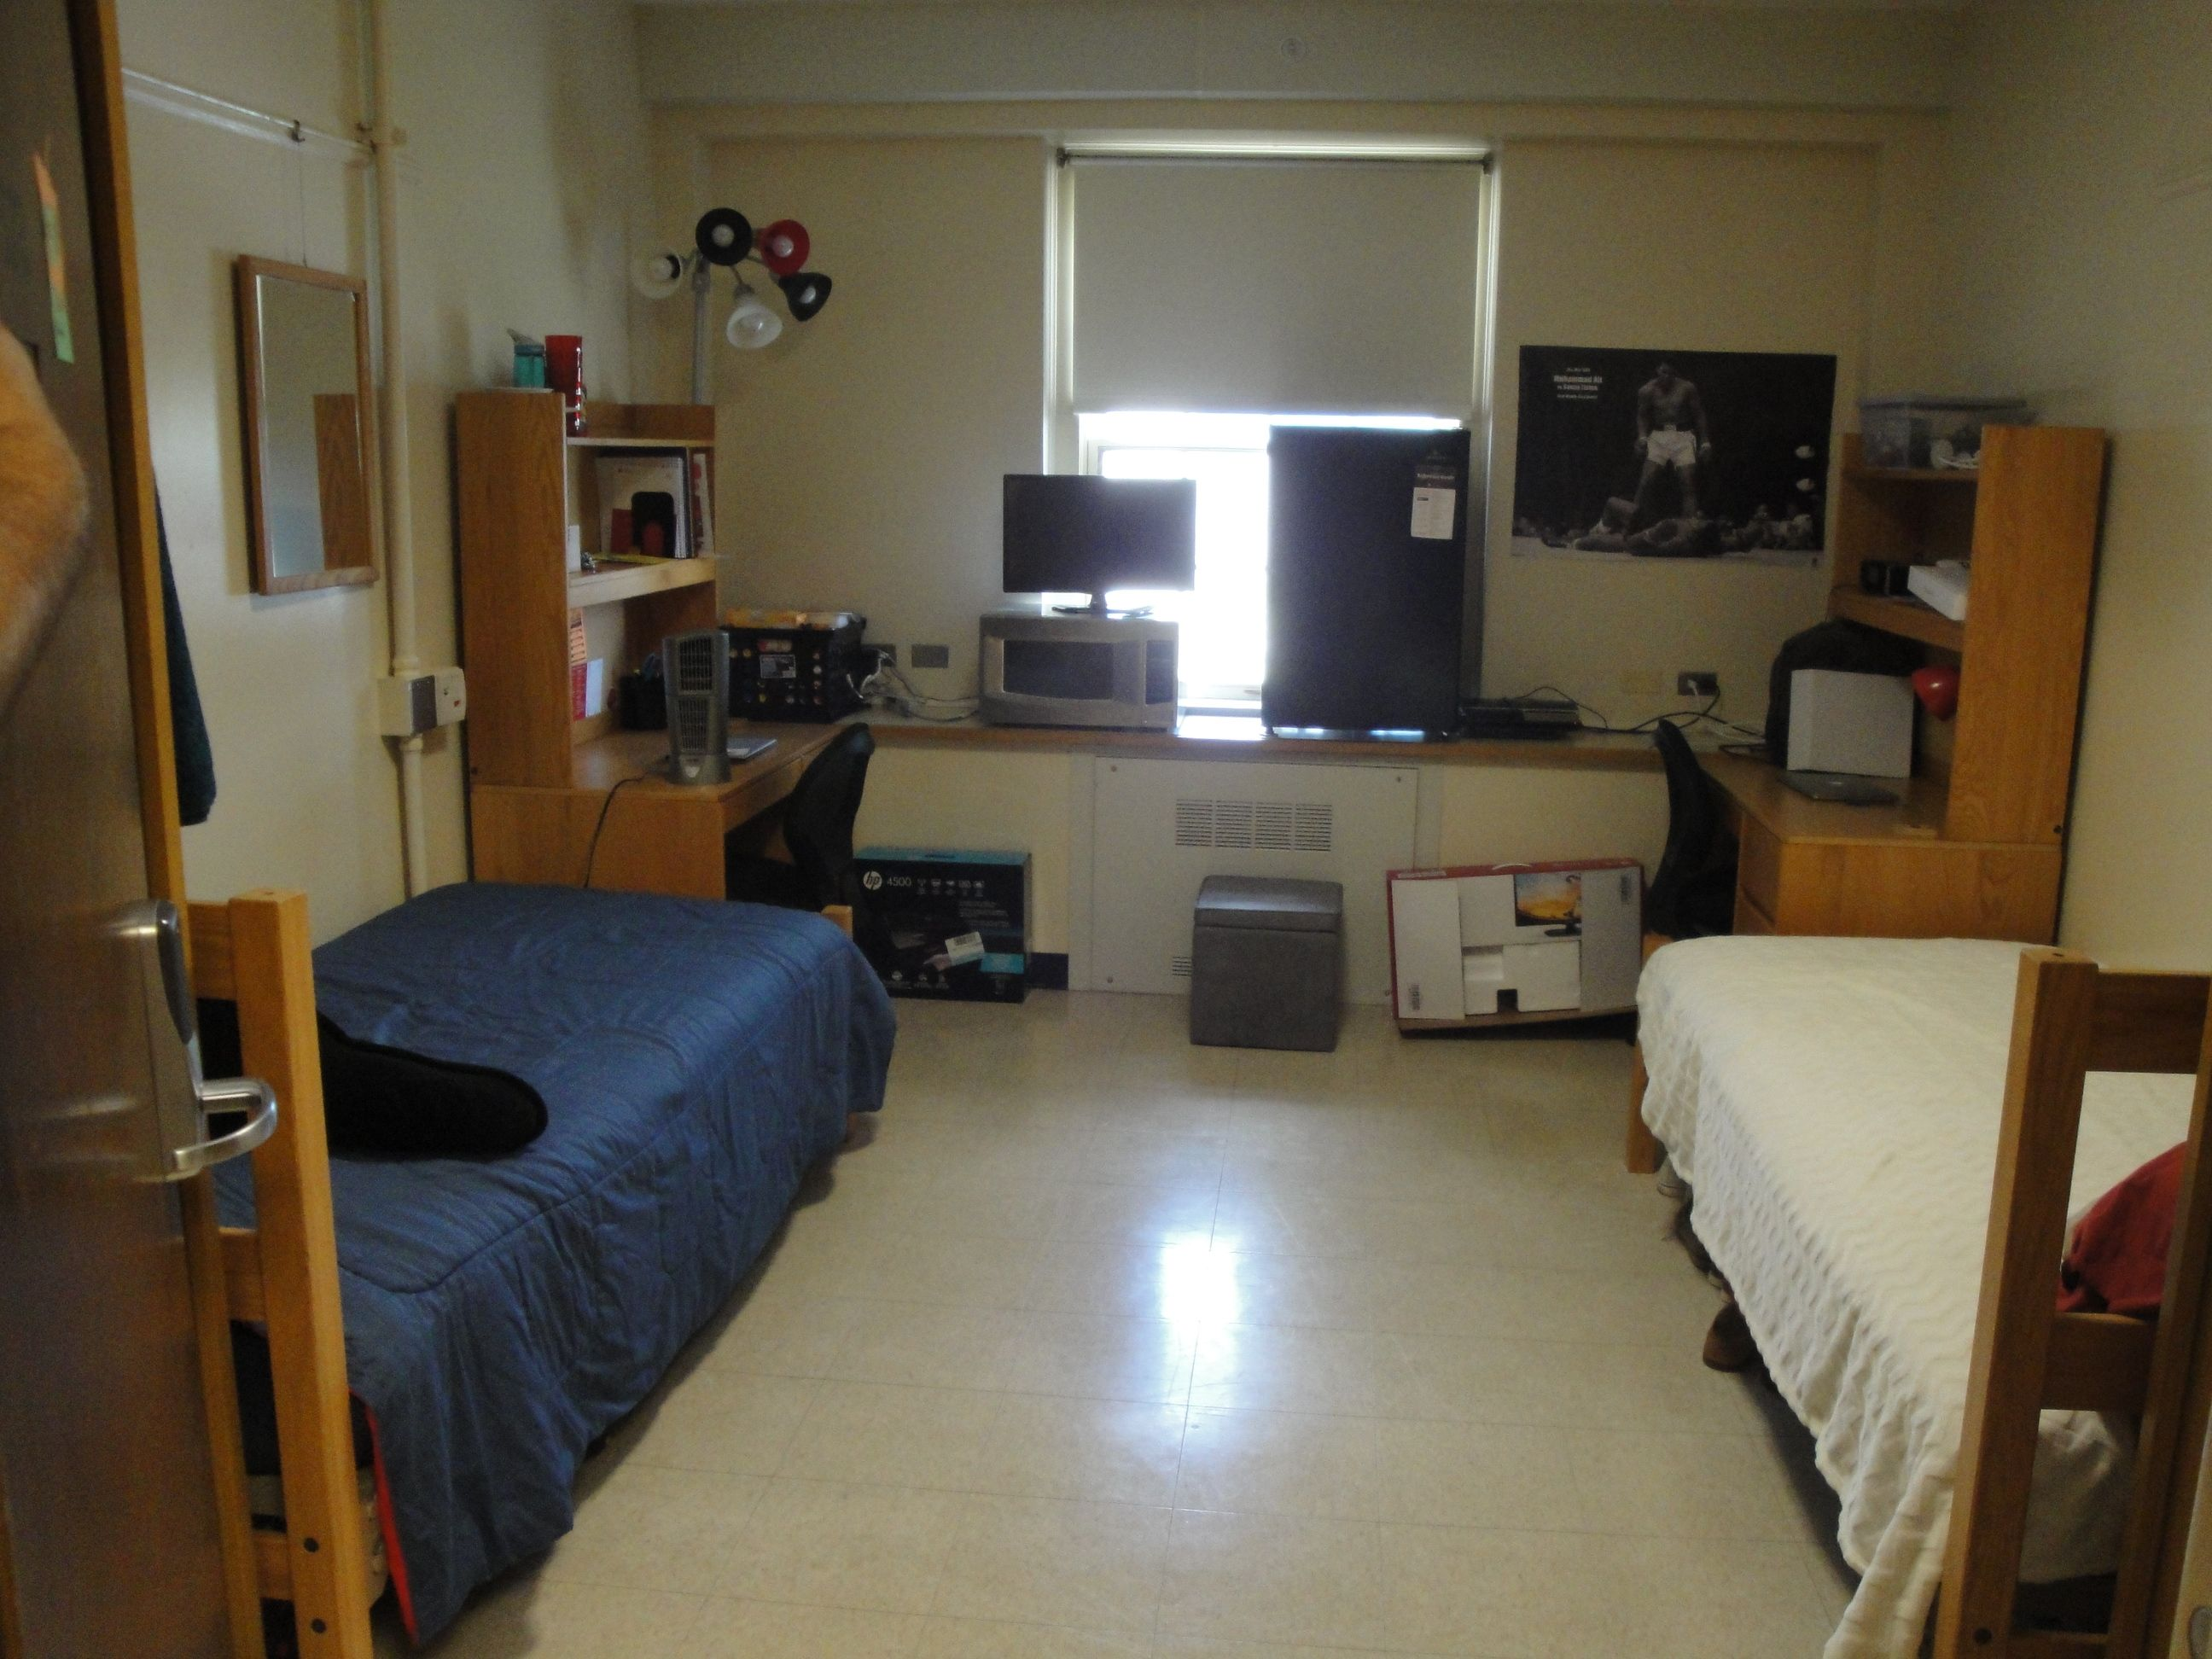 Havighurst Hall Room 373 2015